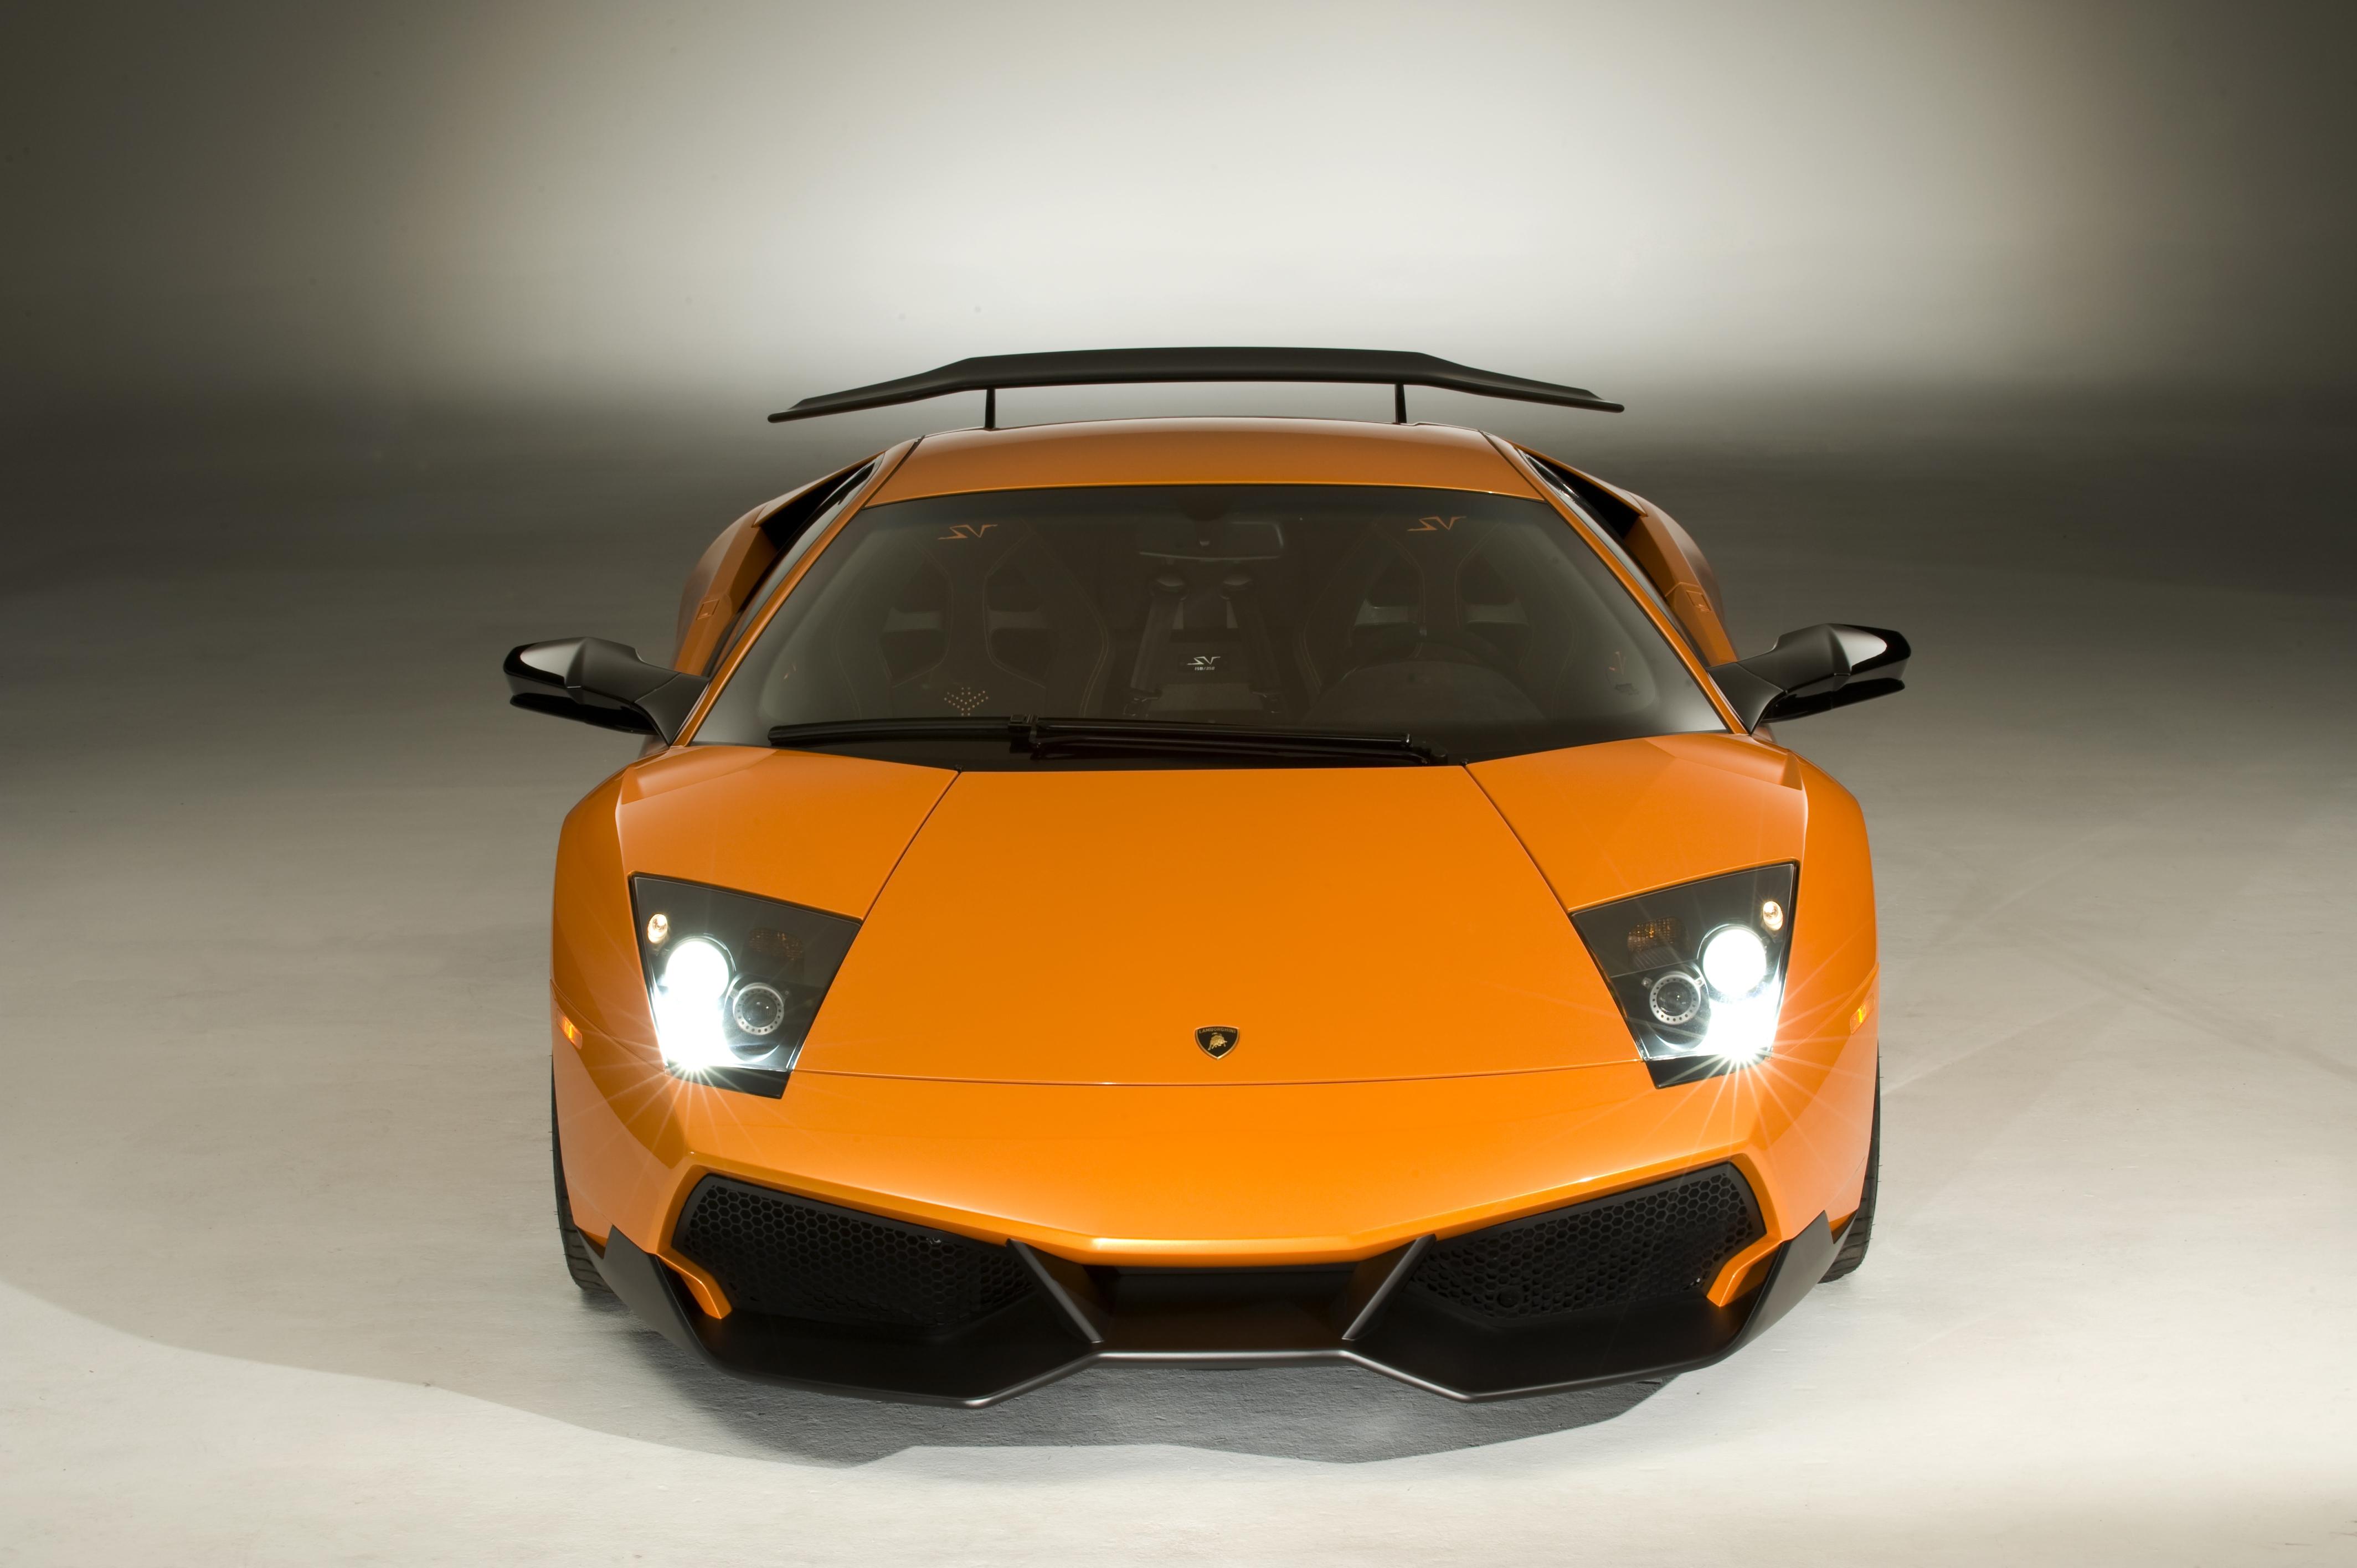 italian cars cars orange HD Wallpaper